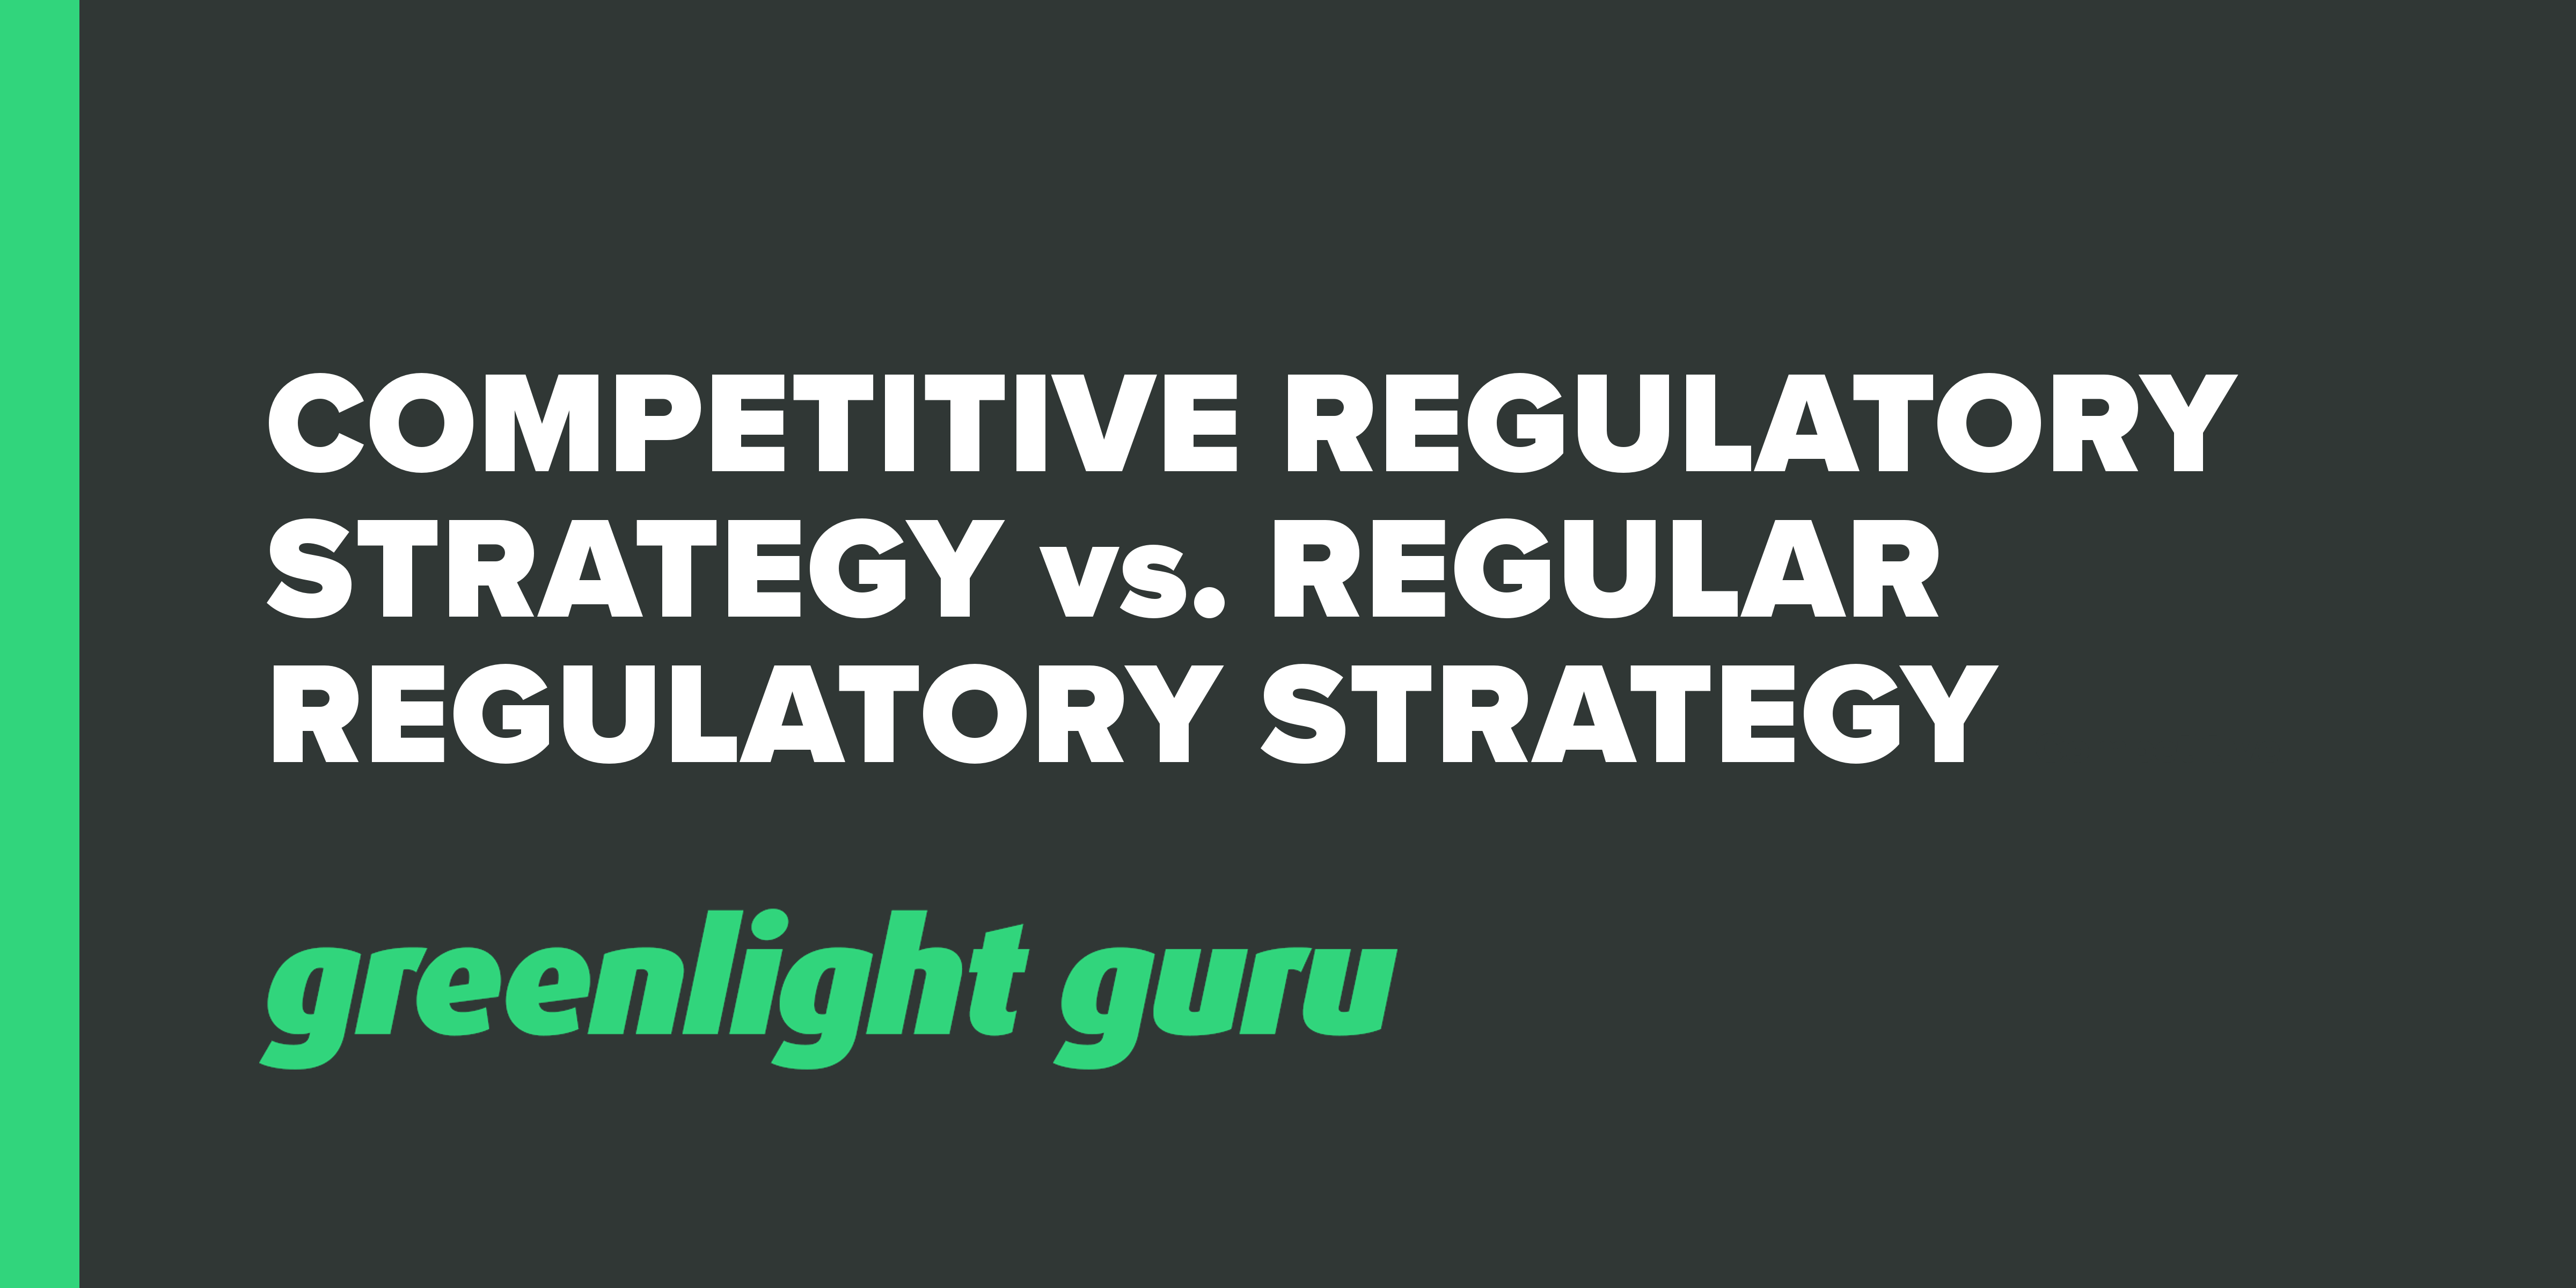 FEATURED-IMAGE_COMPETITIVE_REGULATORY_STRATEGY_vs_REGULAR_REGULATORY_STRATEGYv2